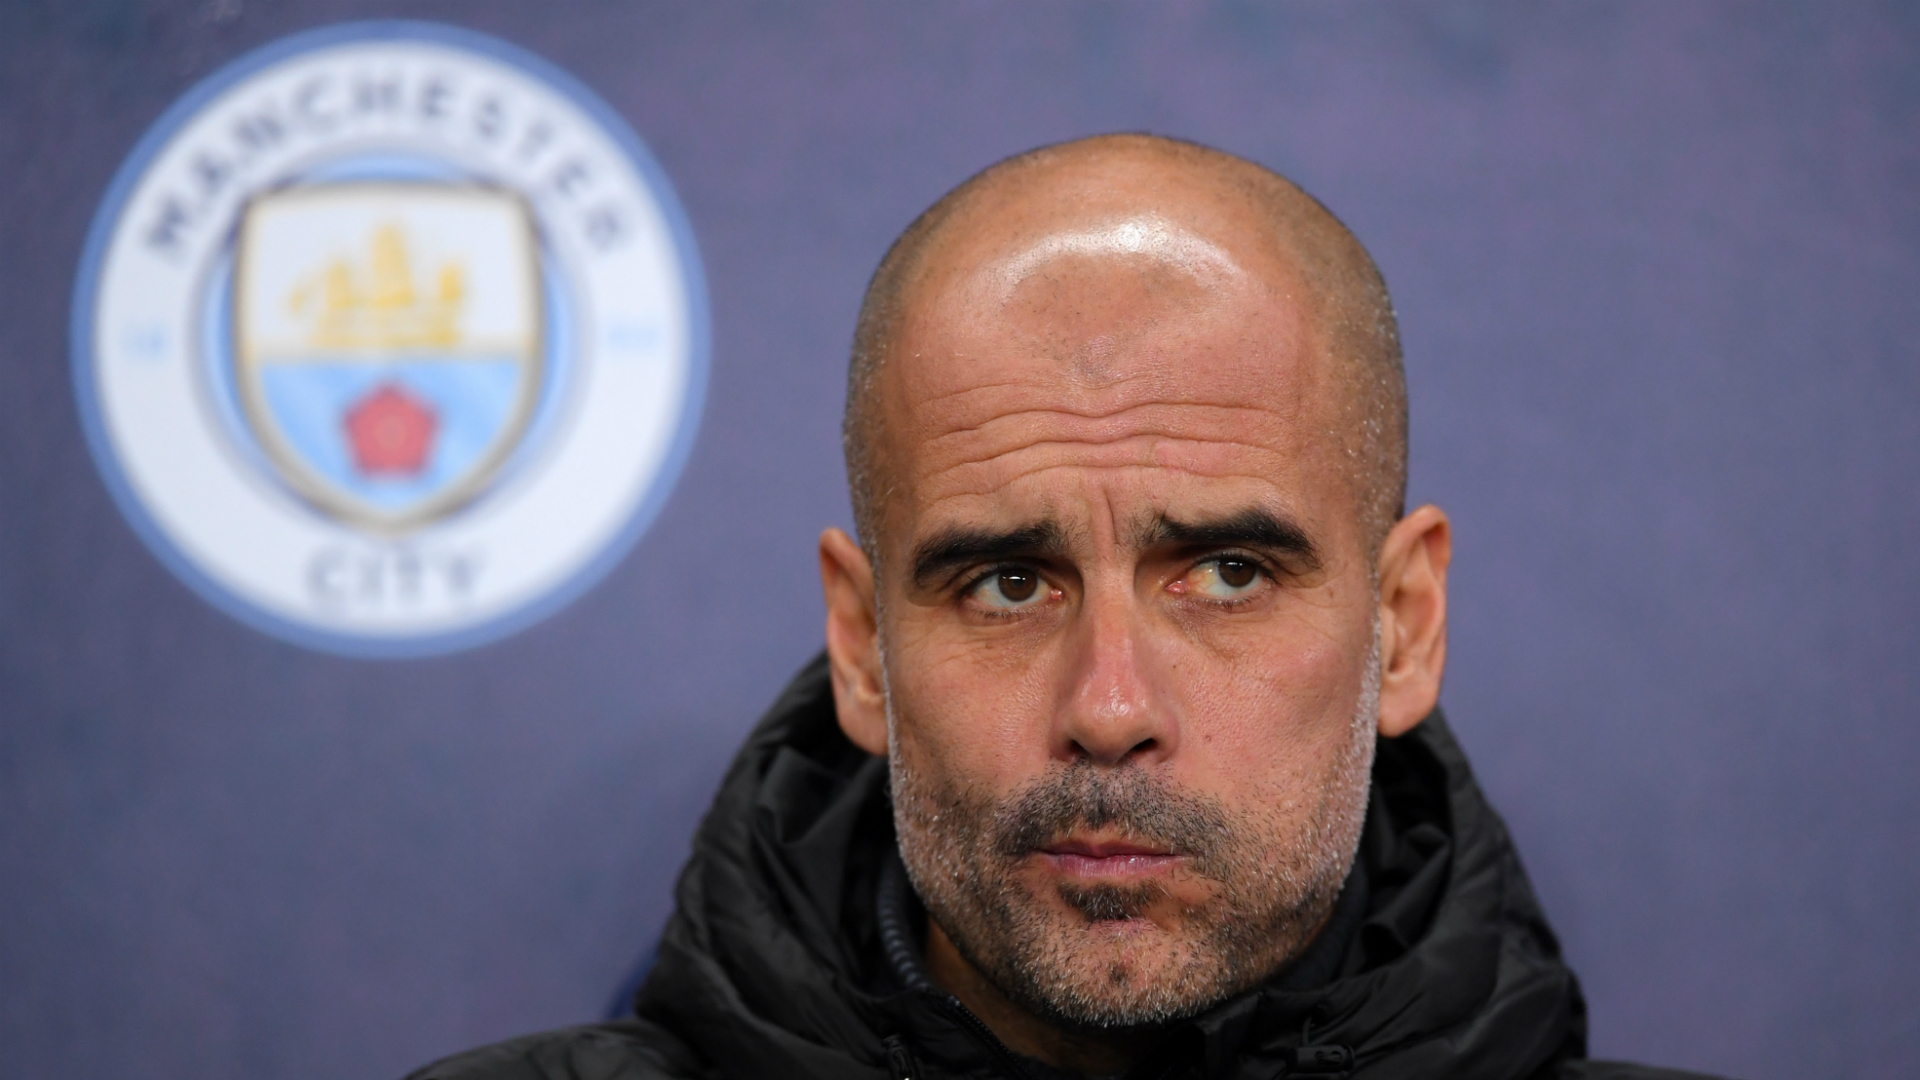 Guardiola says Man City contract hopes will hinge on him delivering success